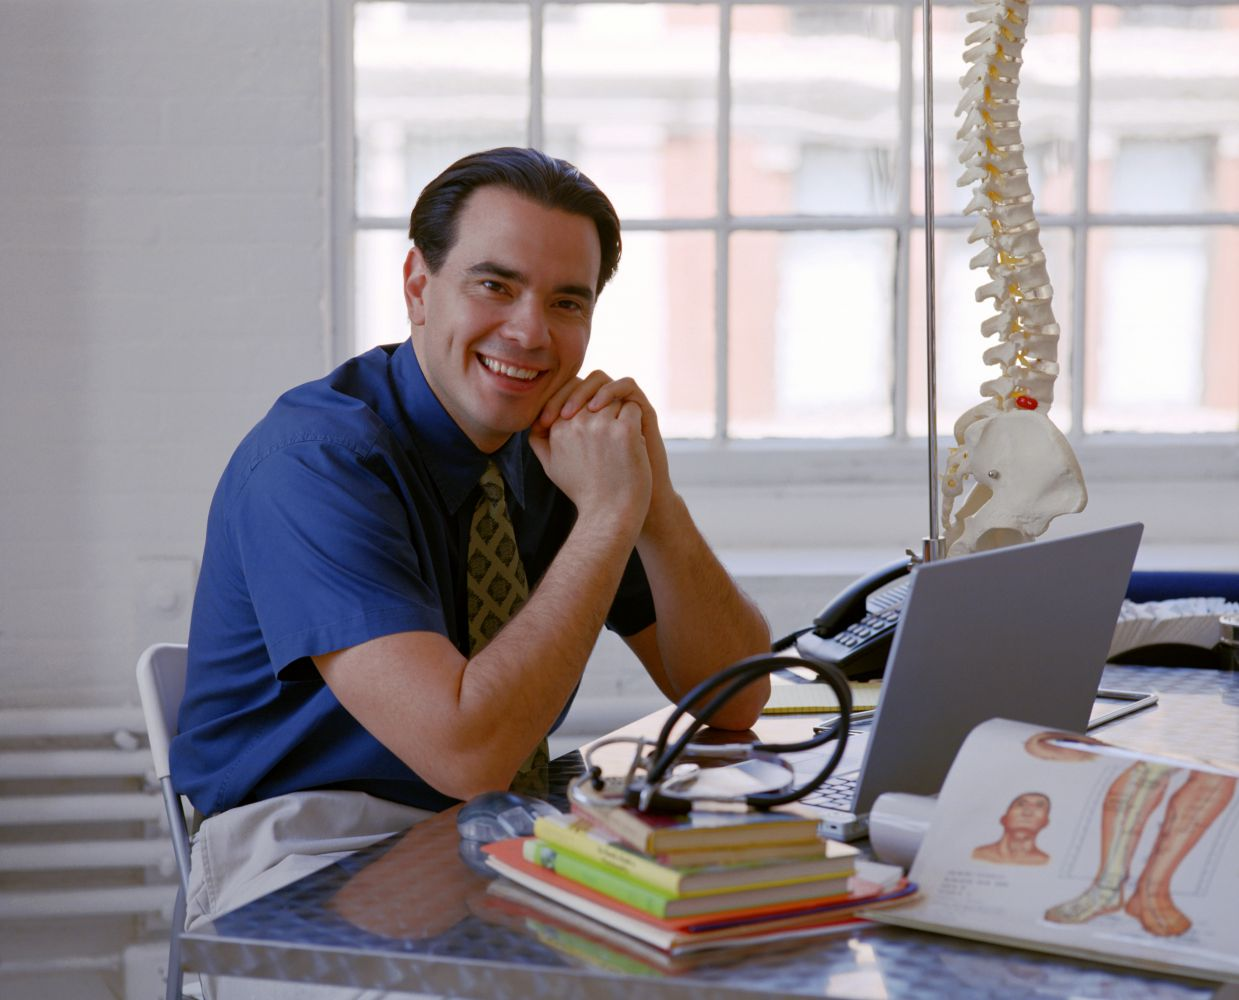 A chiropractor gives a consultation in Juneau, AK